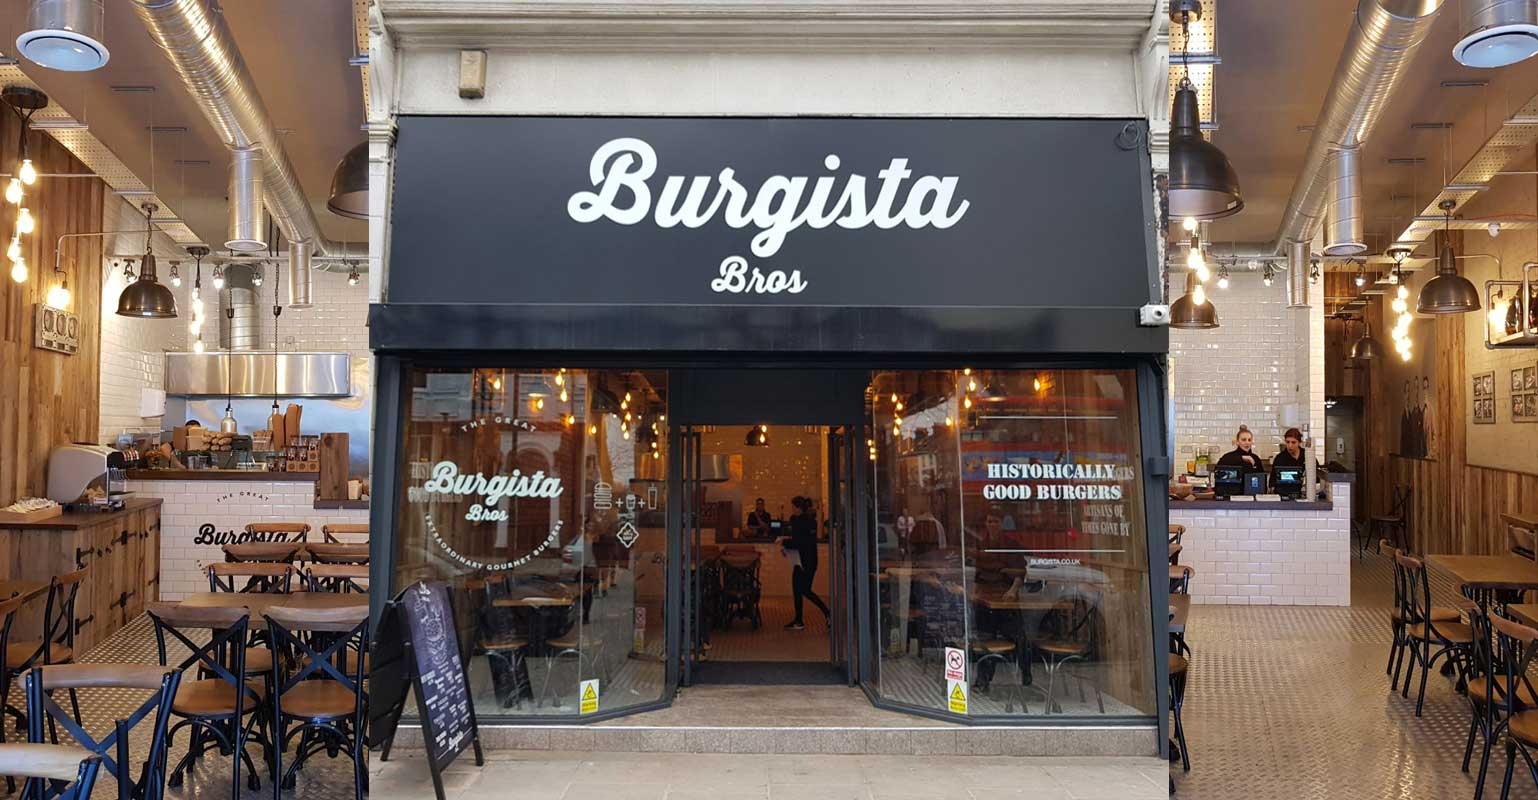 Burgista Bros will be opening the doors to their fifth London branch tomorrow in Finchley. & Finchley to enjoy Burgista Brosu0027 gourmet burgers tomorrow - Feed the ...